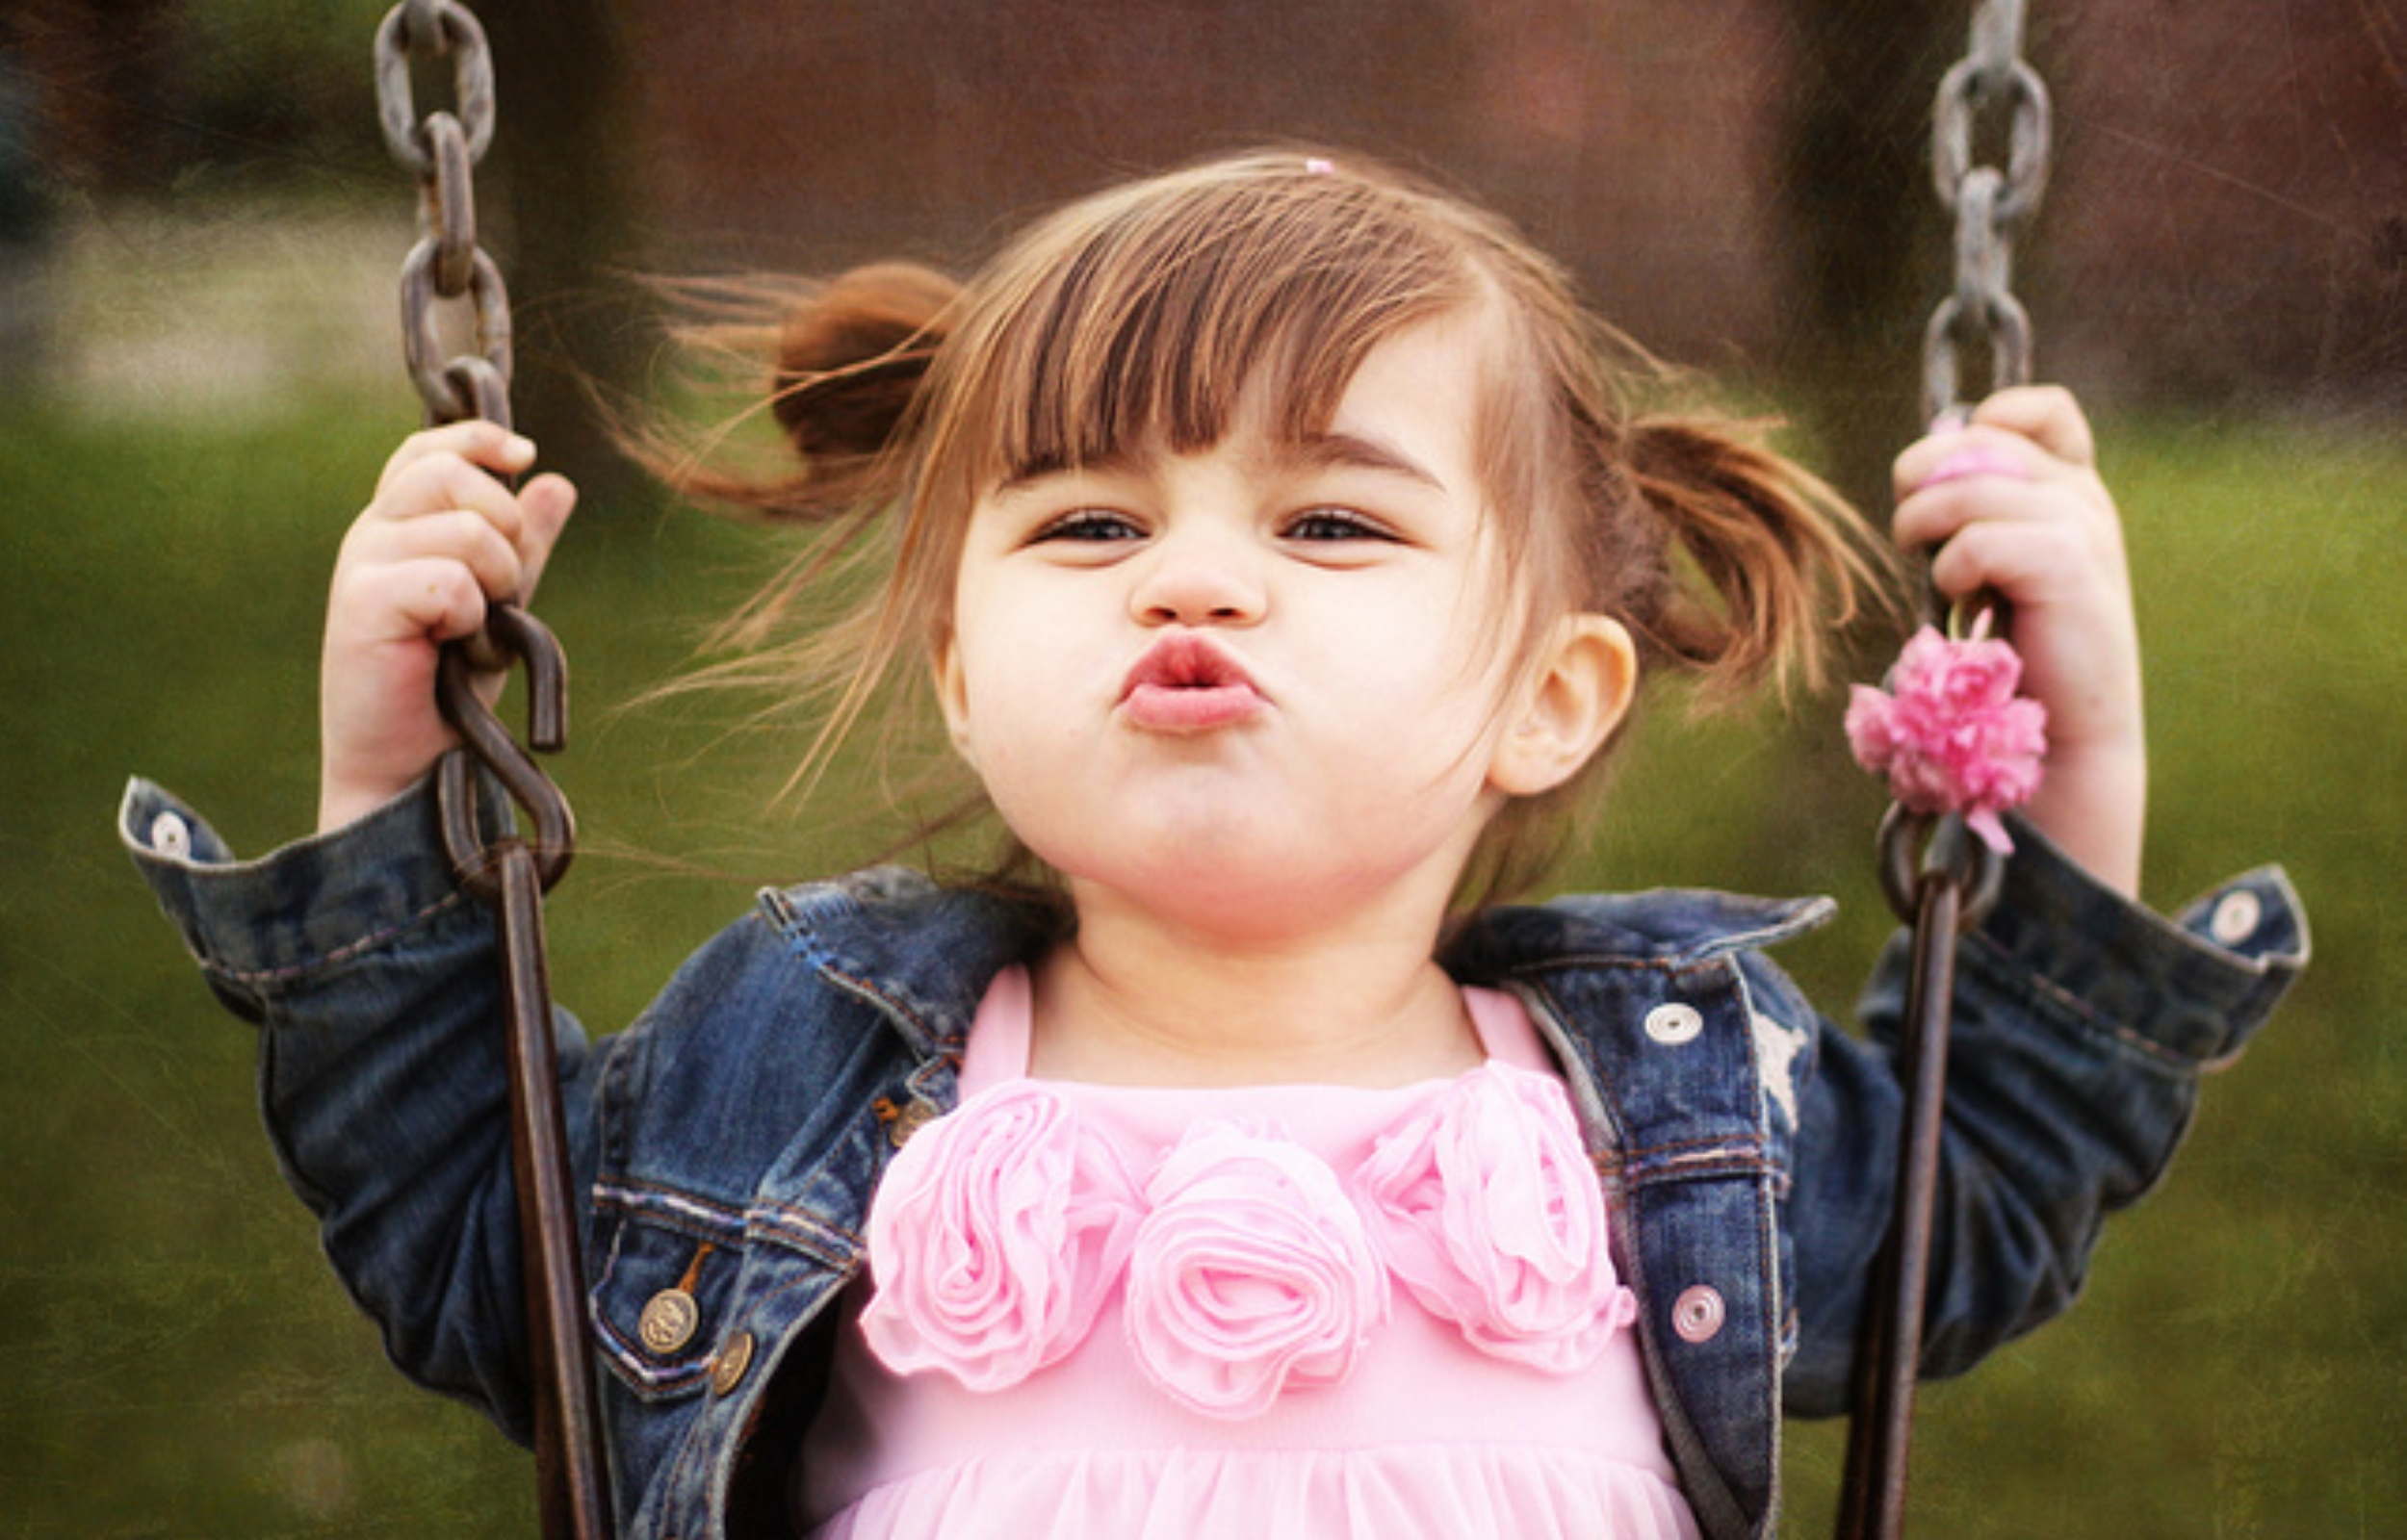 e9b7ab933f7 Download Cute baby girl smiling - Cute baby for your mobile cell phone